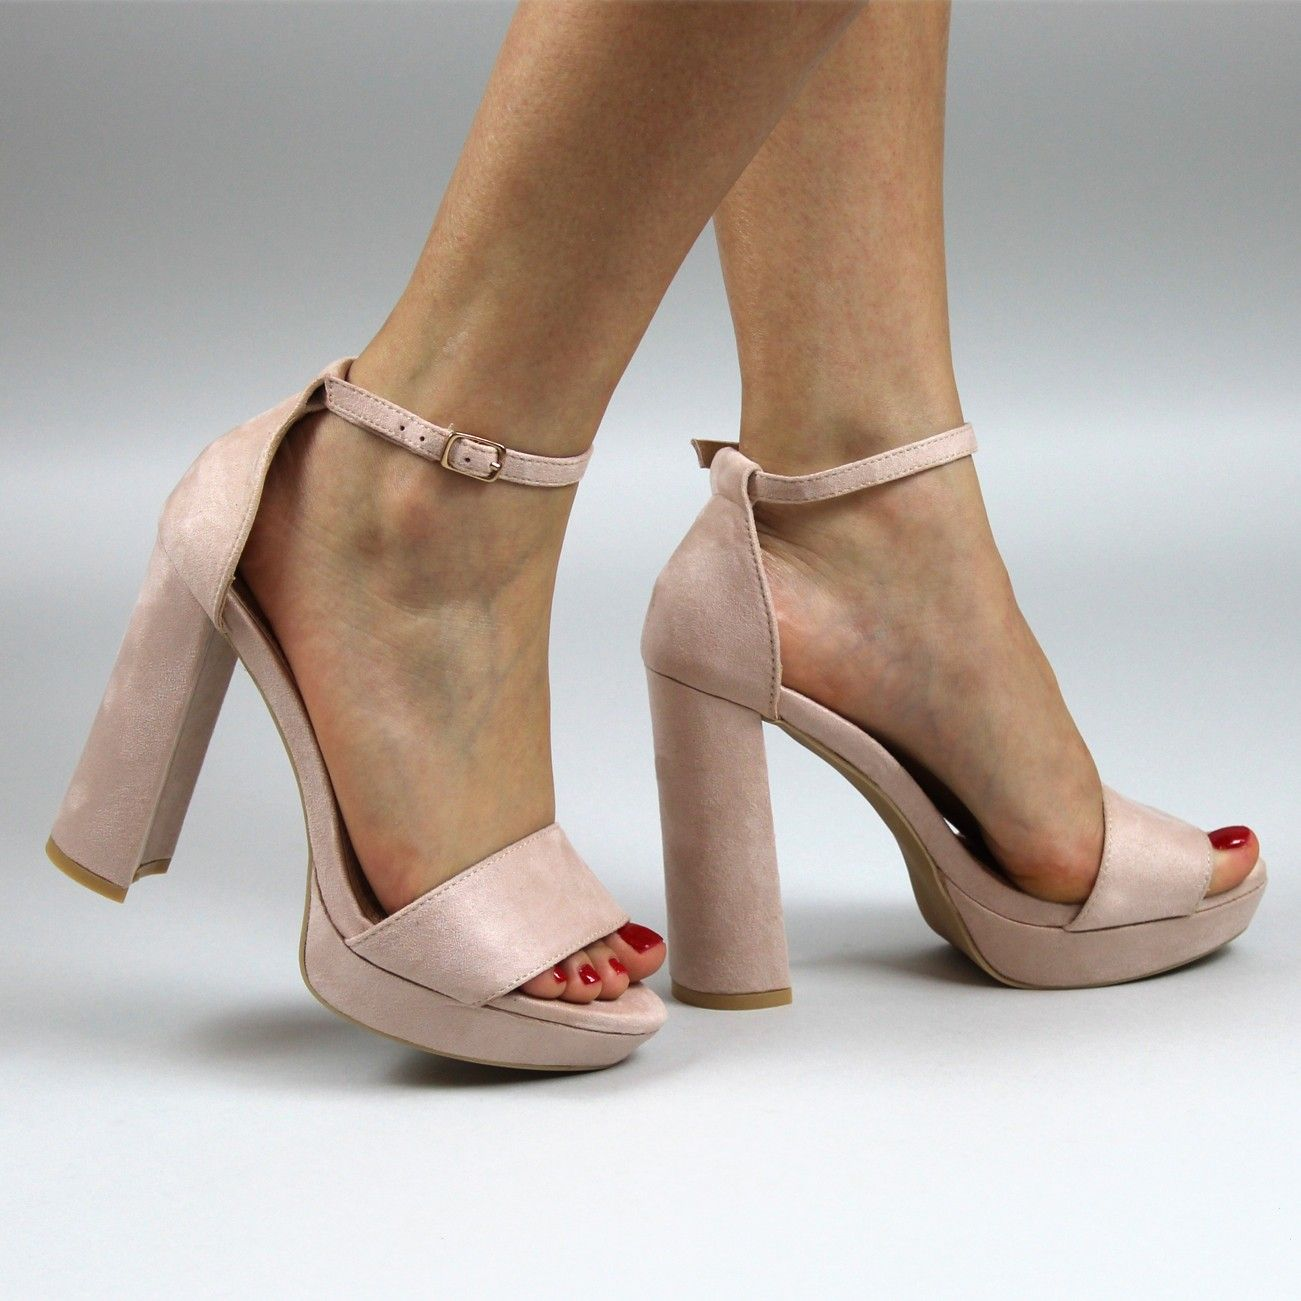 aa4a1835eb7 Cristal Nude Block Heel Open Toe Barely There Ankle Strap High Heels ...